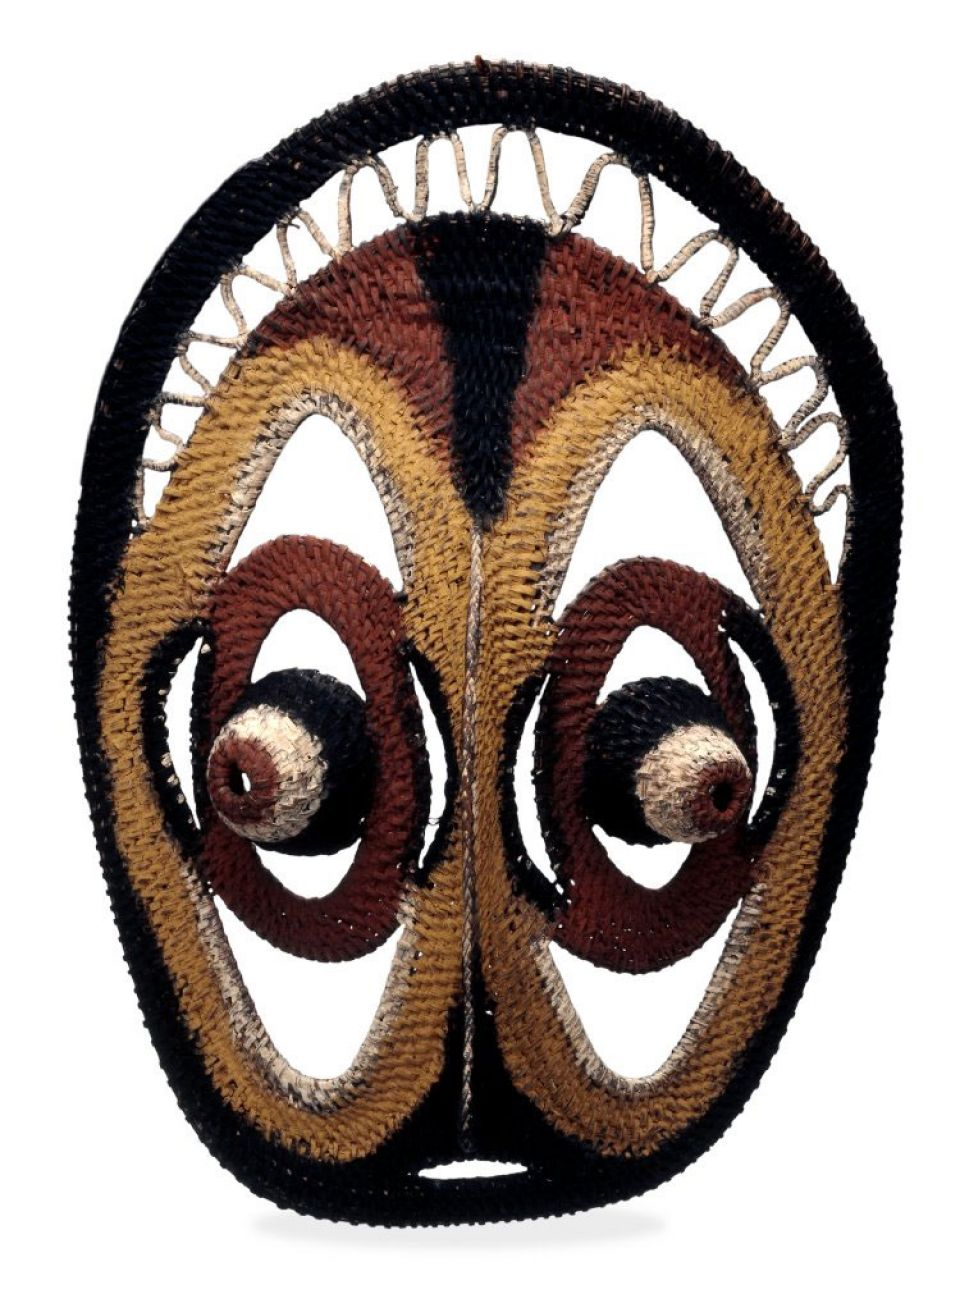 Yam mask made of wapi bush fibre, decorated with pigment